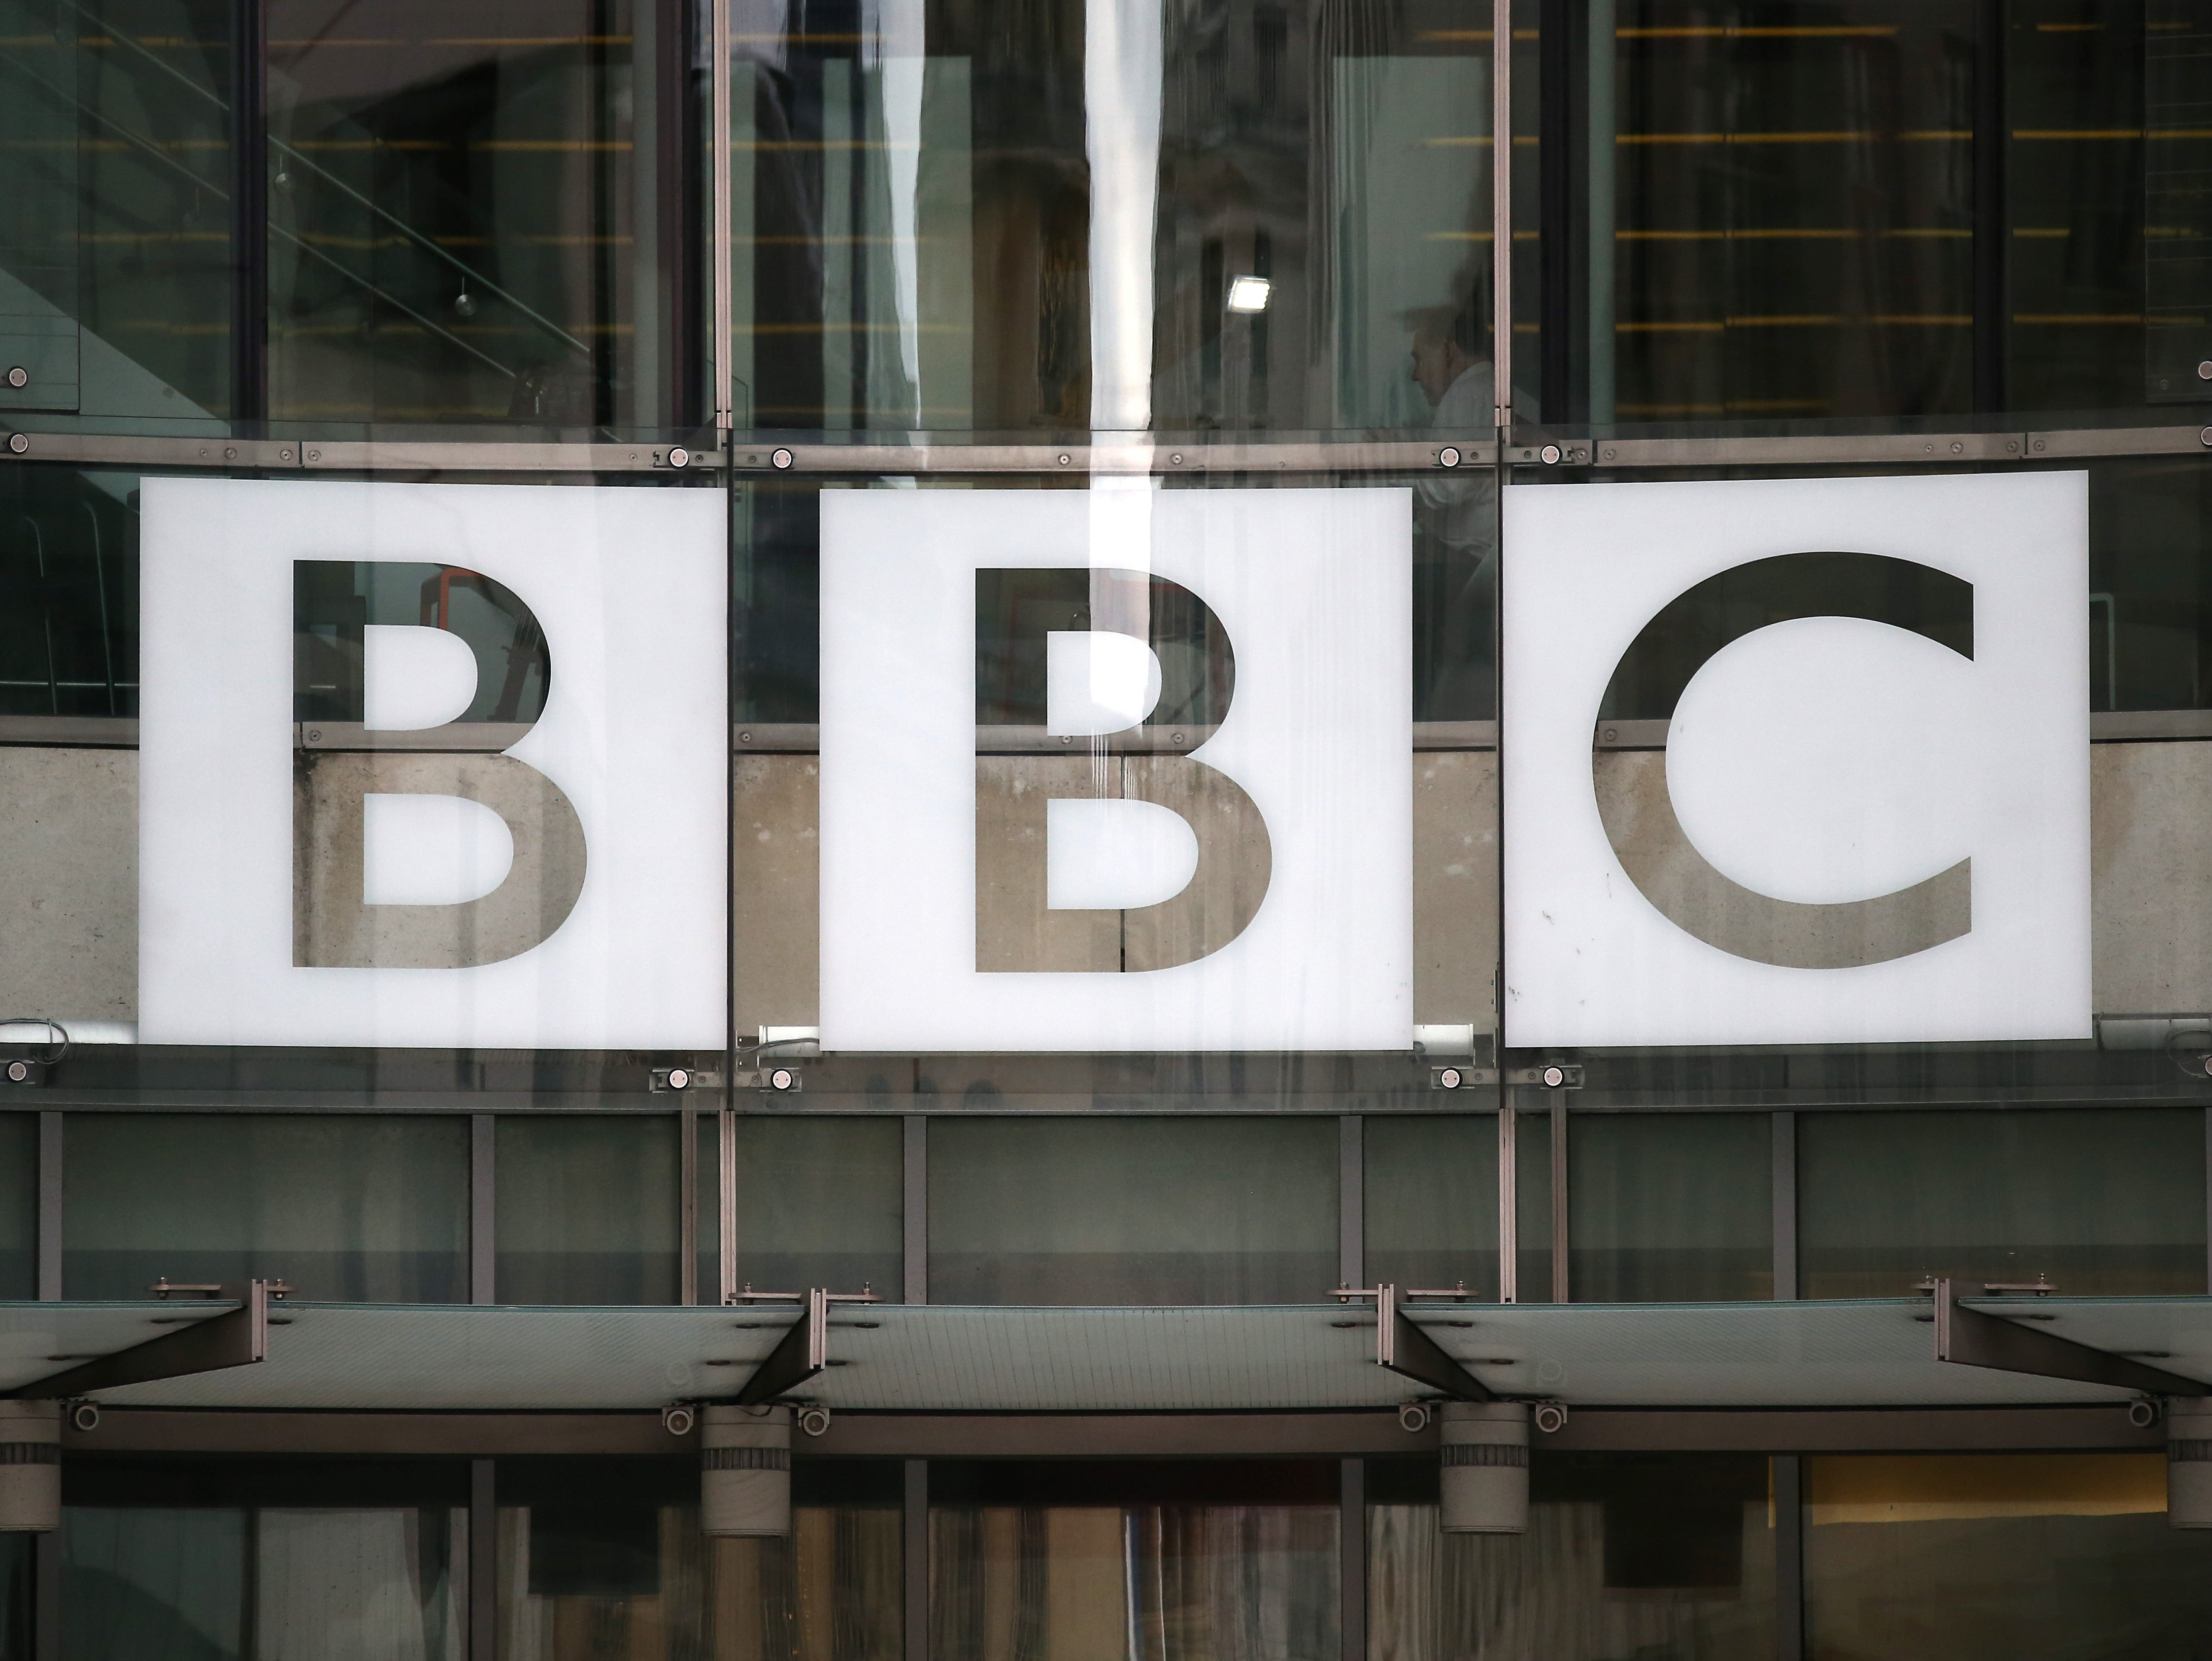 BBC reaches record global audience of 468.2m people every week